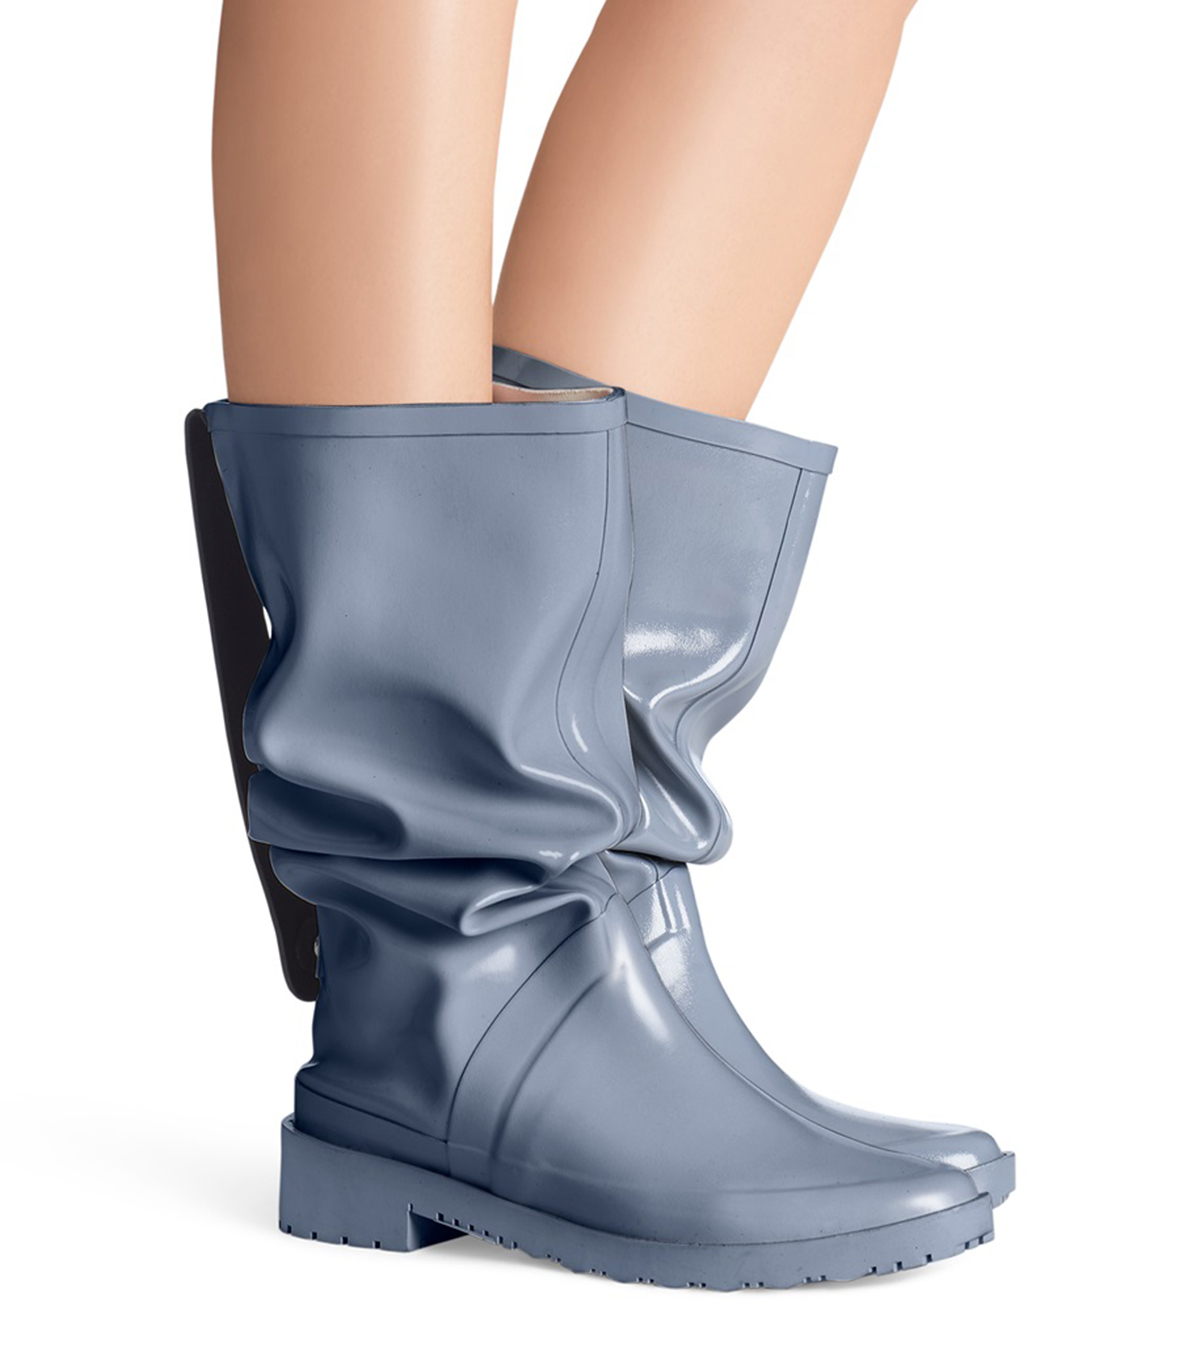 5d5f624a4 These Designer Rain Boots Are Selling Out, but We Found Them on Sale